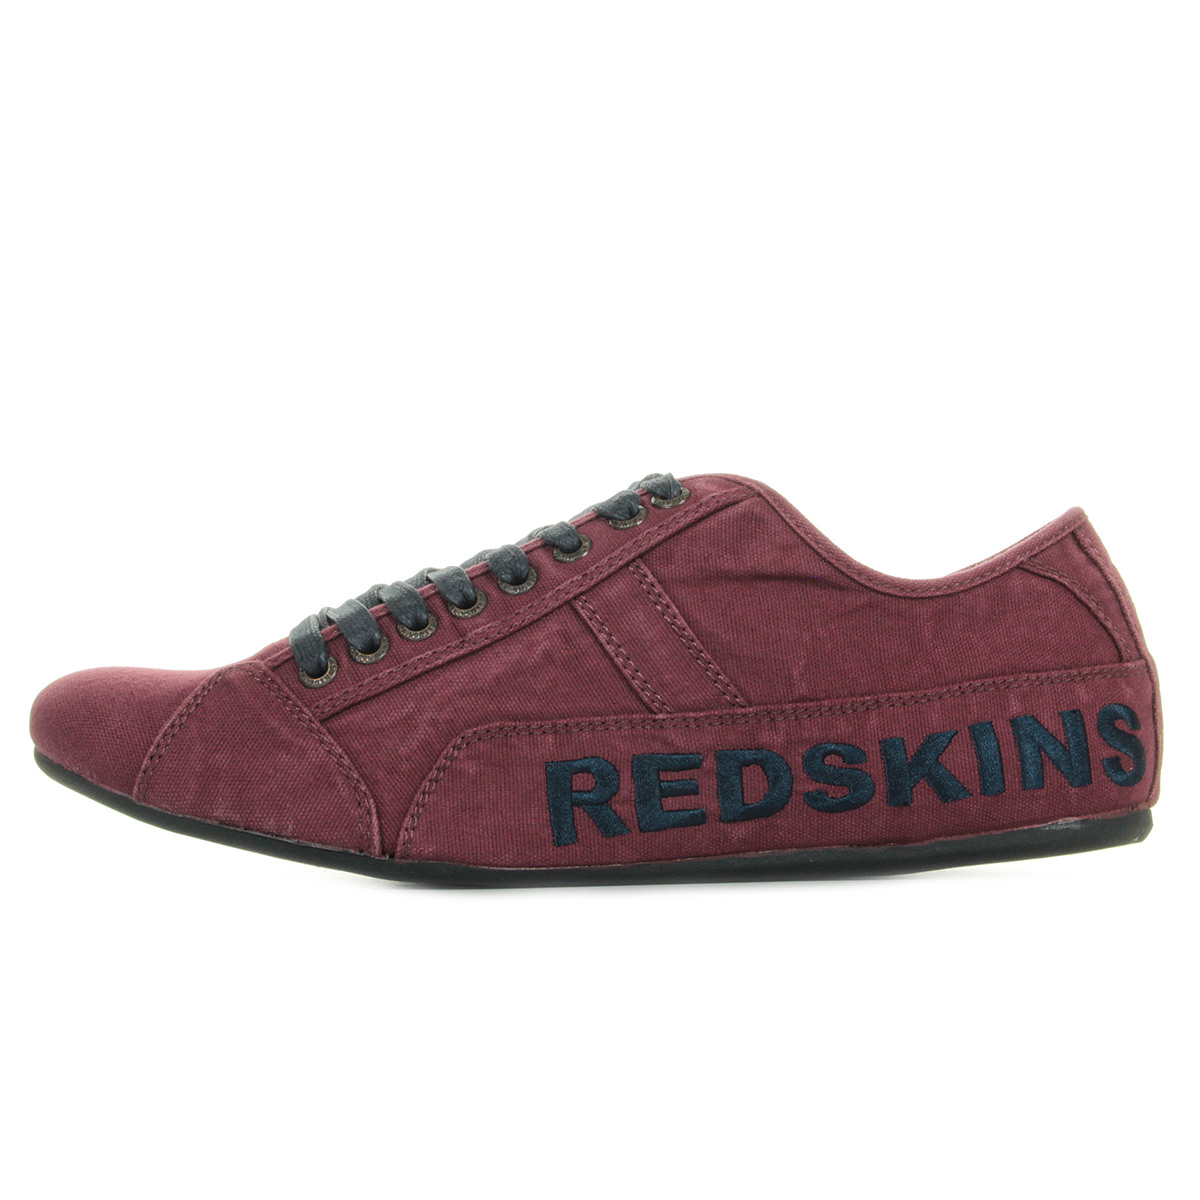 Redskins Tempo 406 Bordeaux Marine HP631A6406, Baskets mode homme